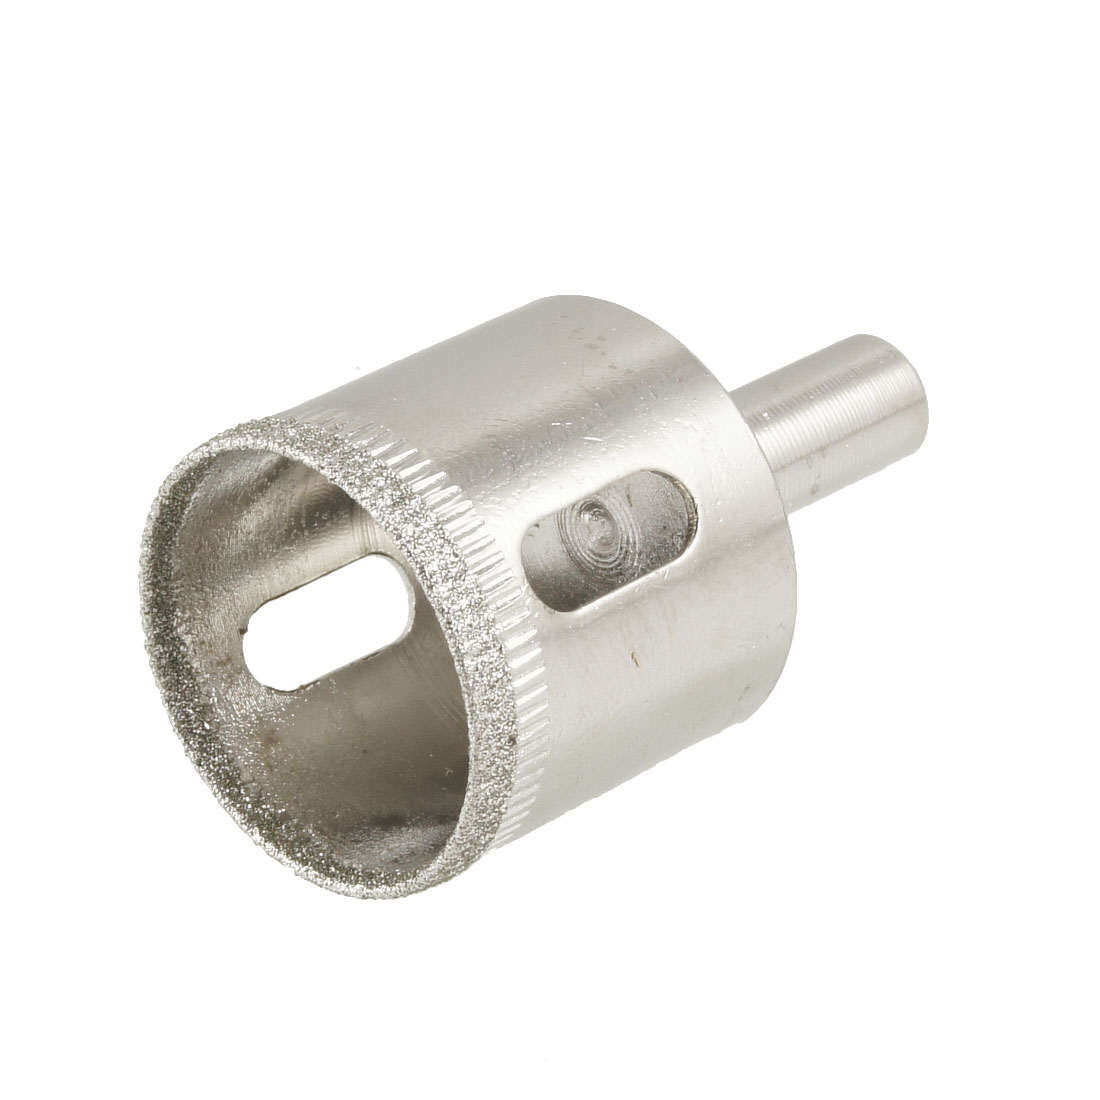 32mm Diameter Hole Saw Drill Bit Cutter for Glass Ceramic Tile